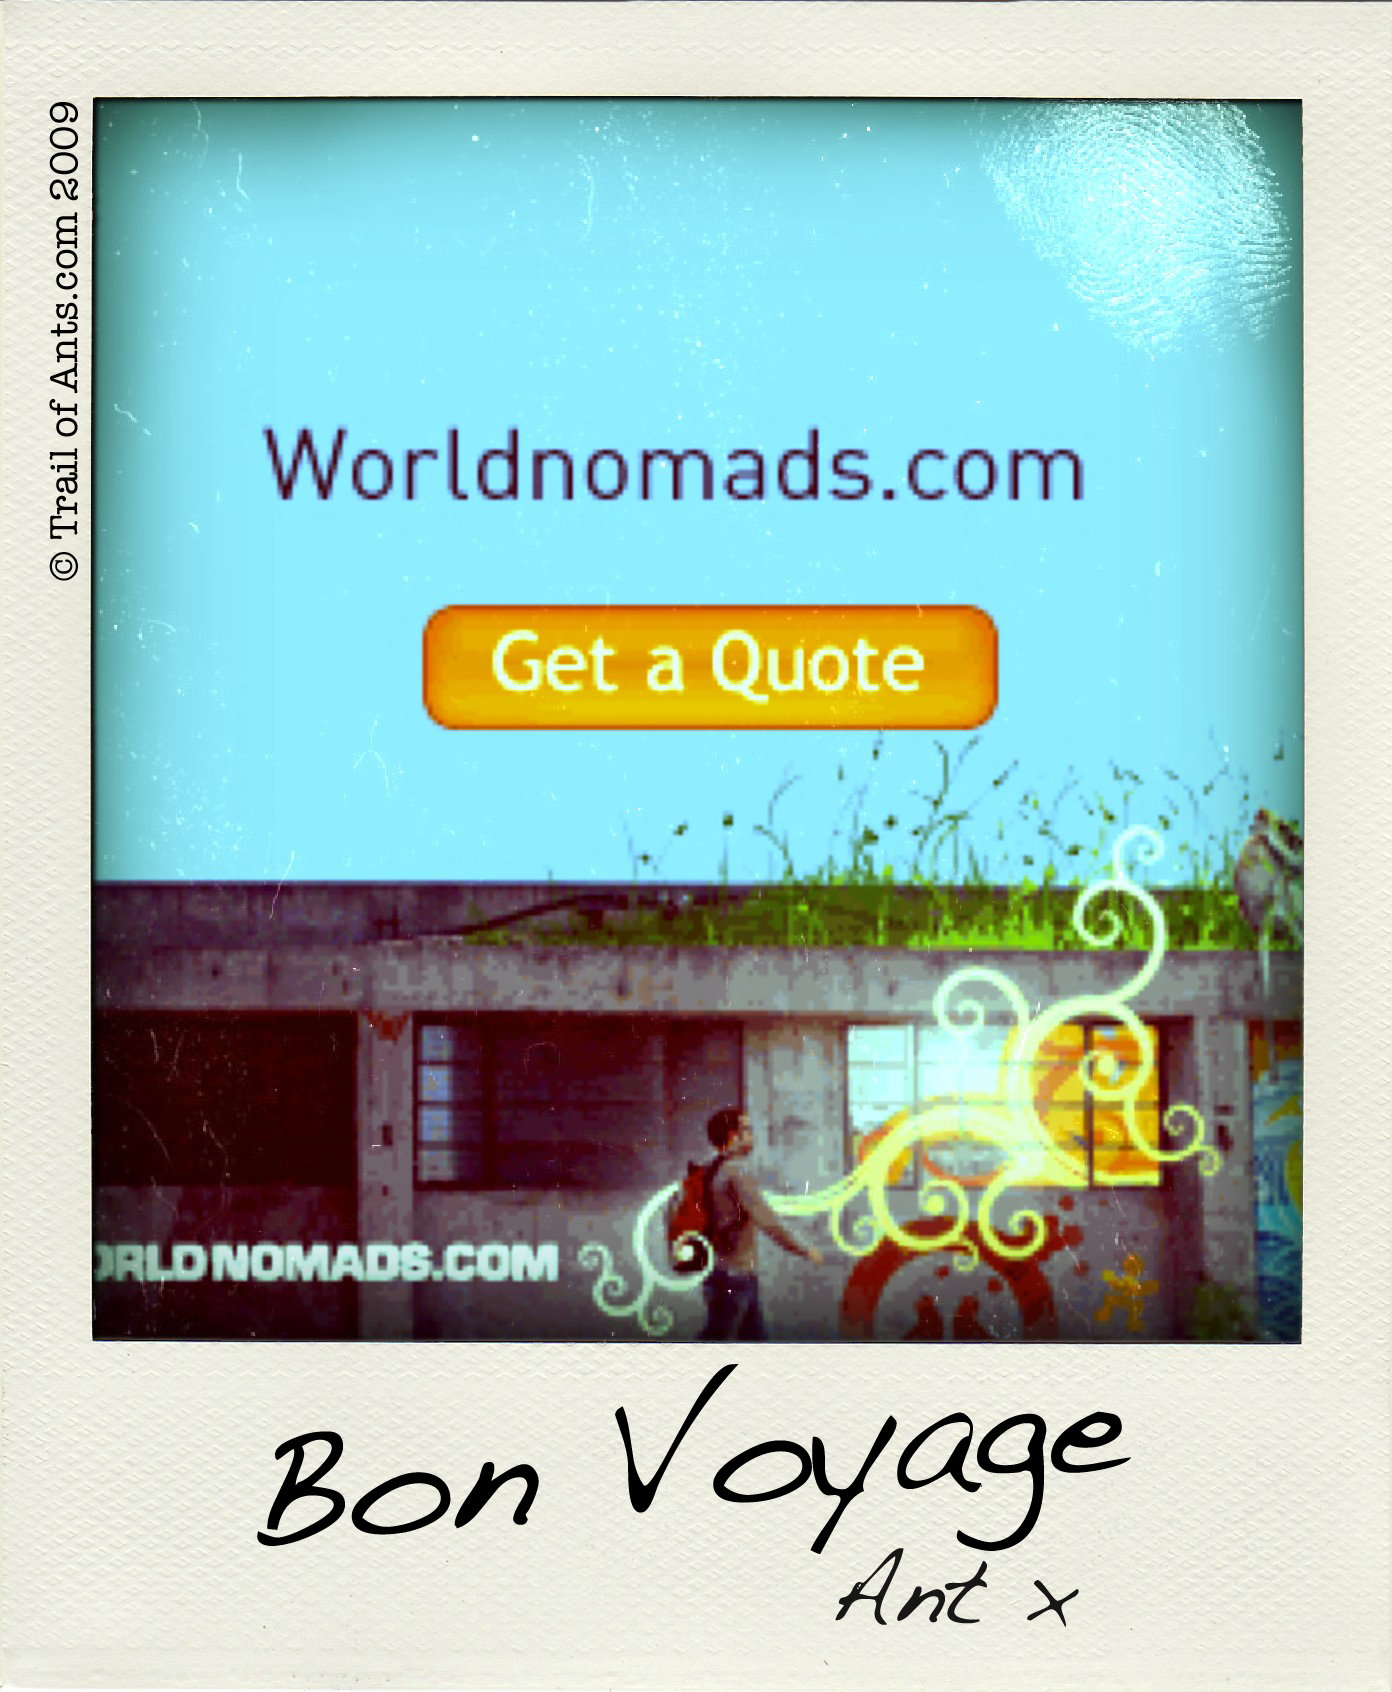 WorldNomads.com Get a quote! Bon Voyage.